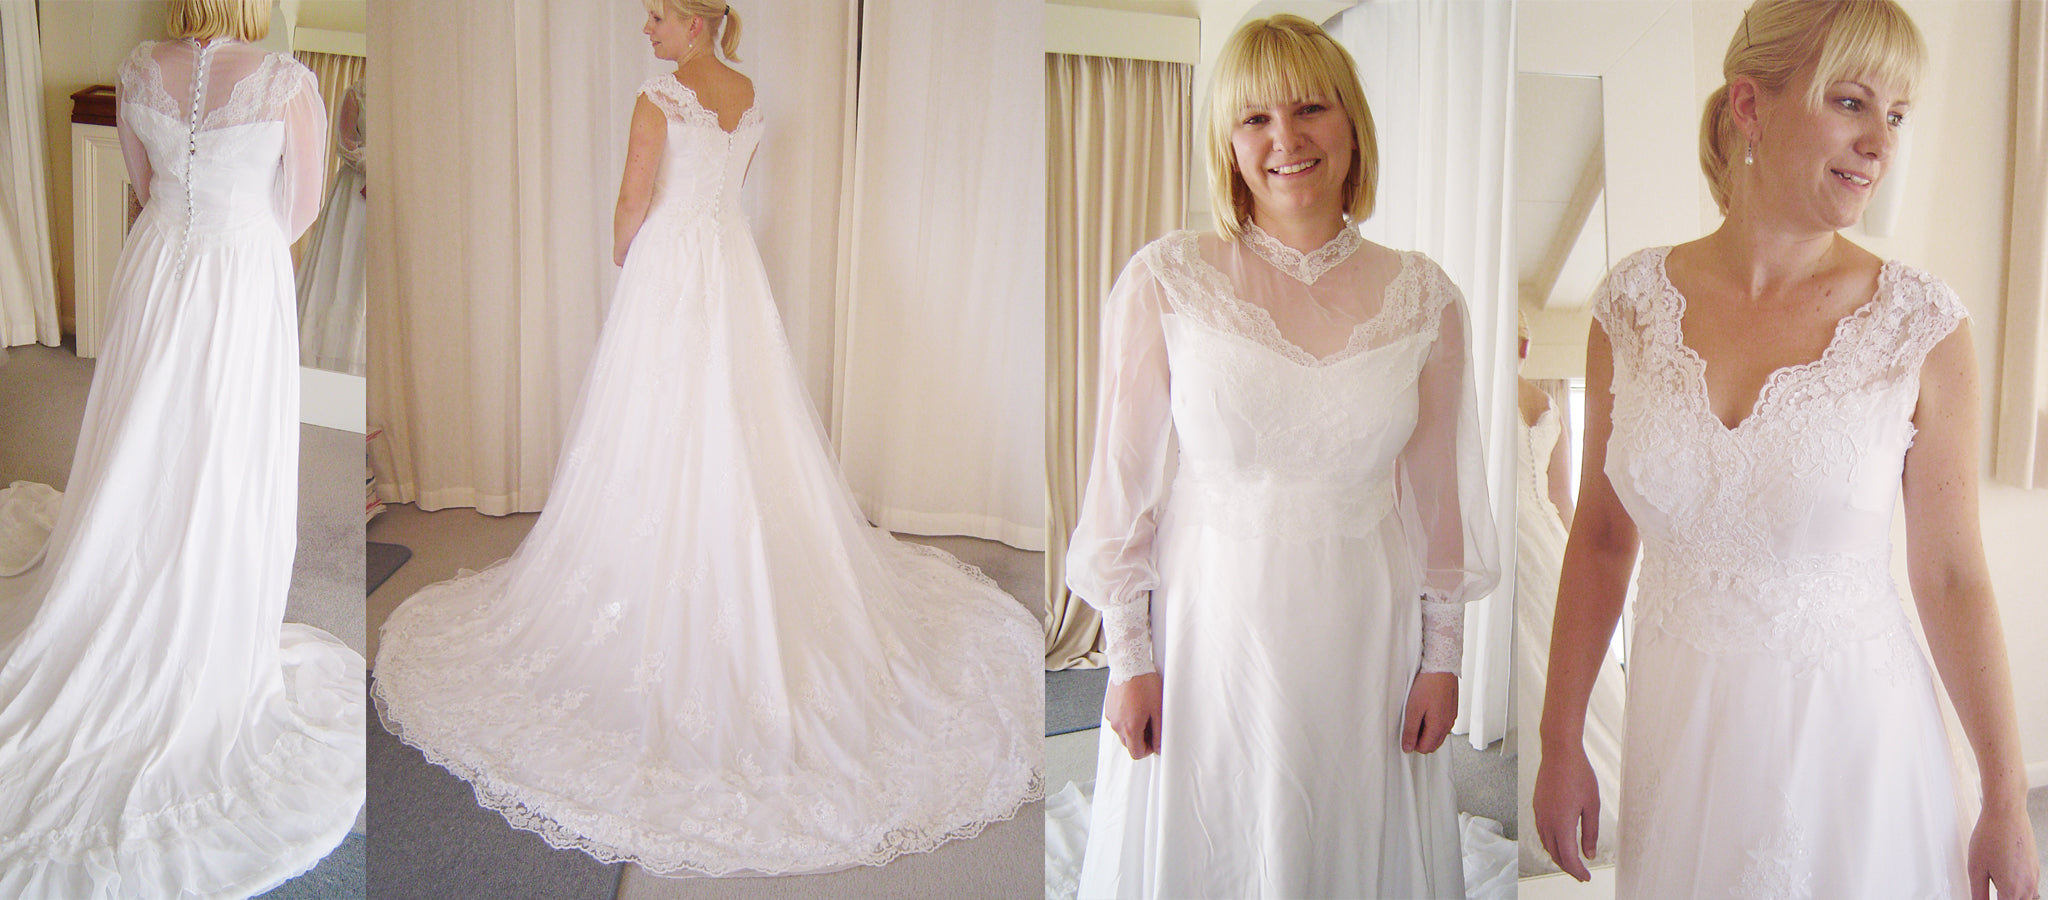 Nicole Lainee Hermsen Bridal Gown Couture Wedding Dress New Zealand